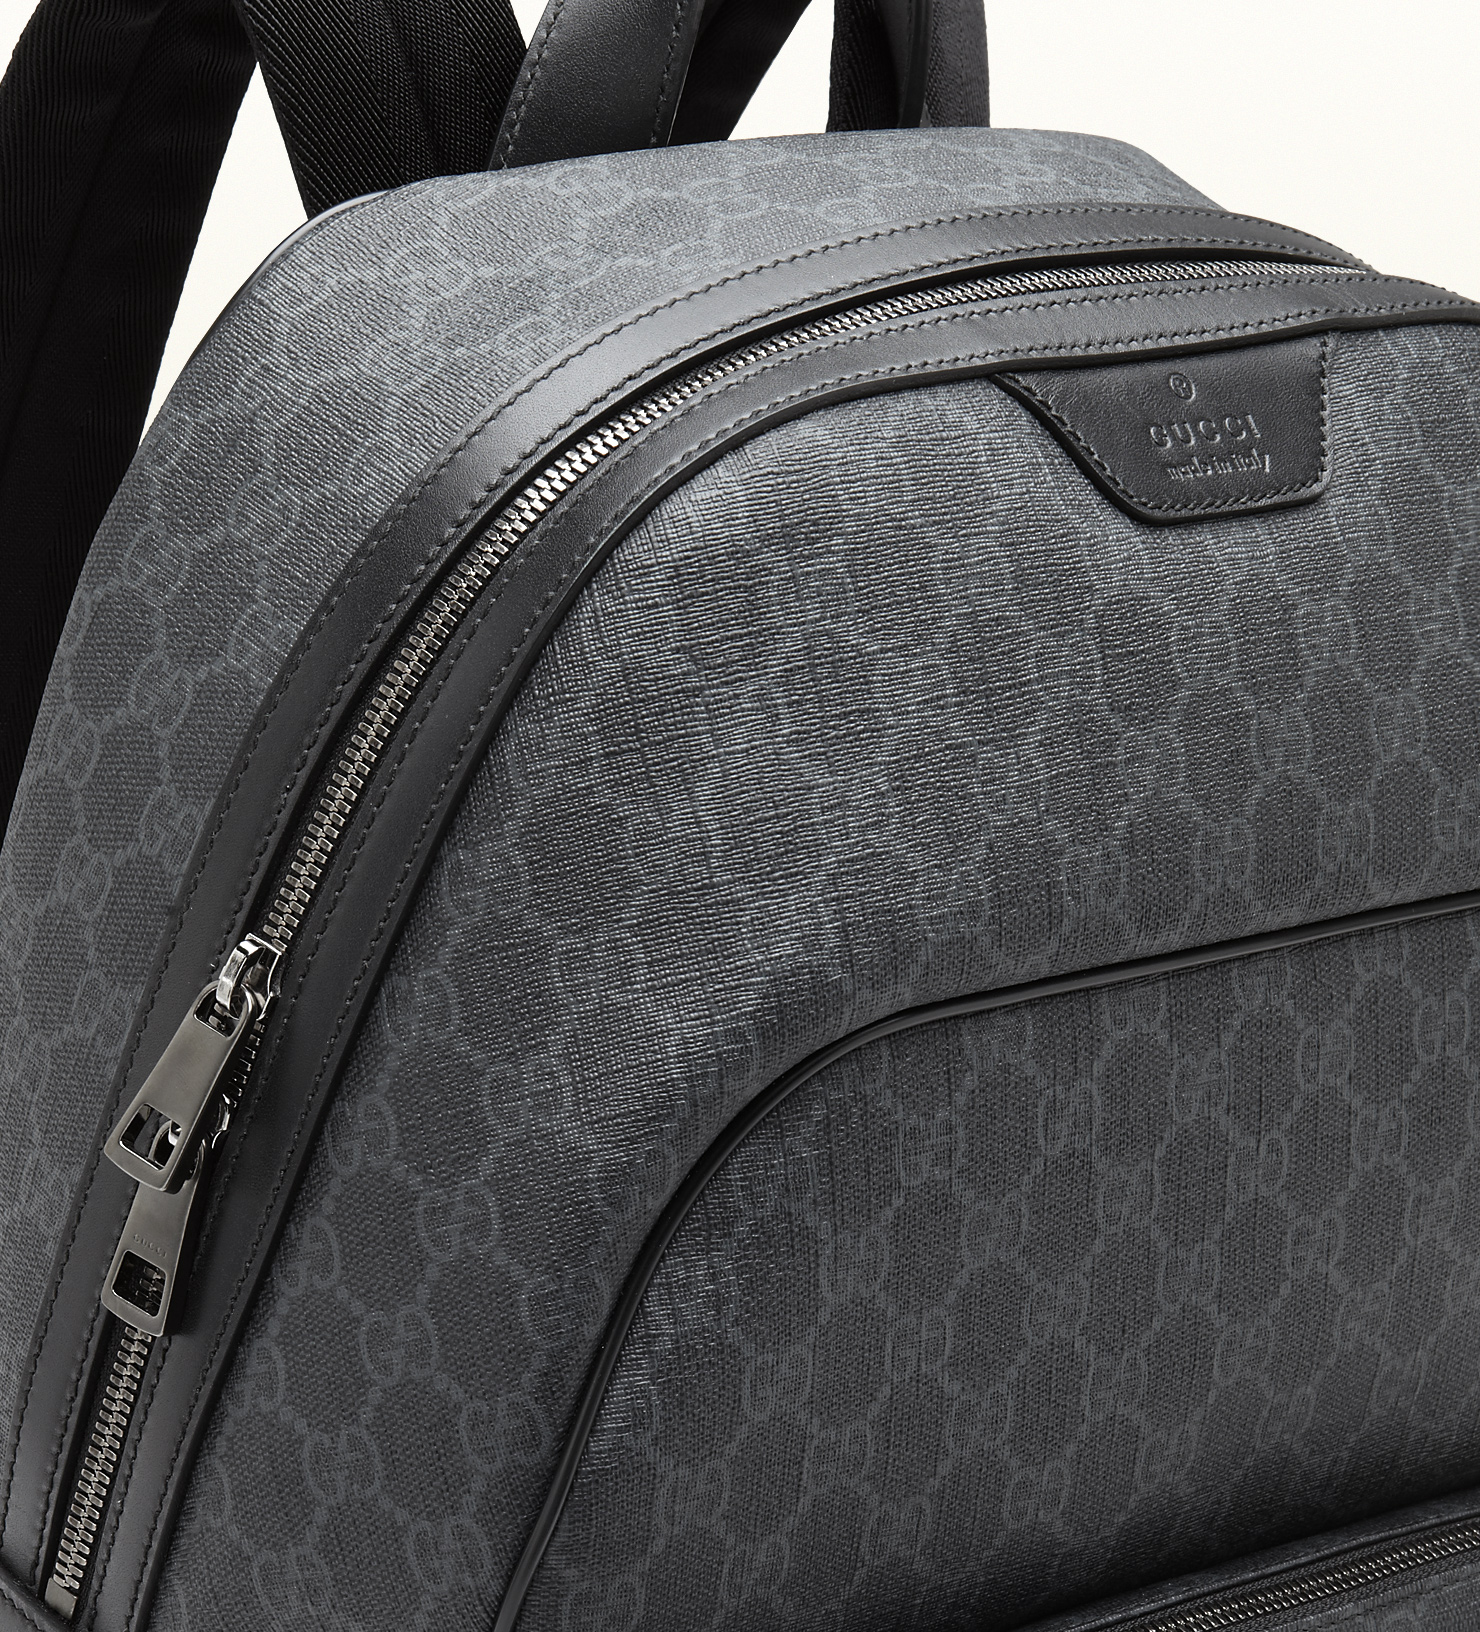 e0560441b8a Lyst - Gucci Gg Supreme Canvas Backpack in Gray for Men